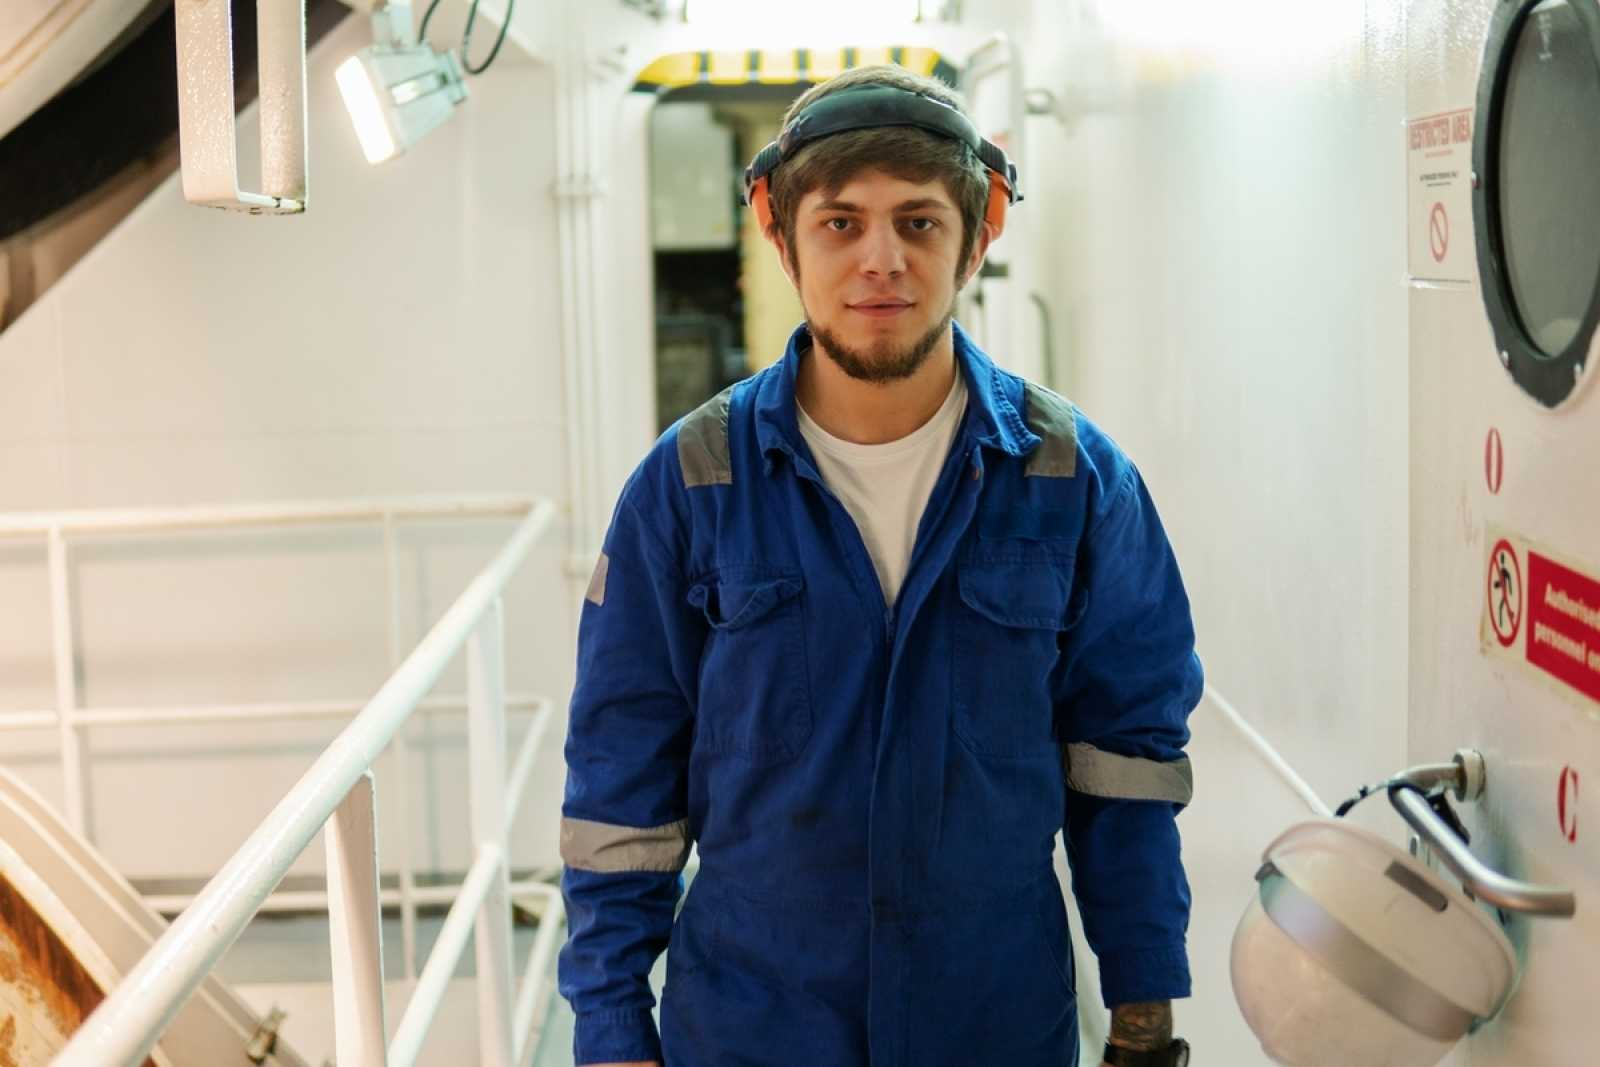 Ship worker